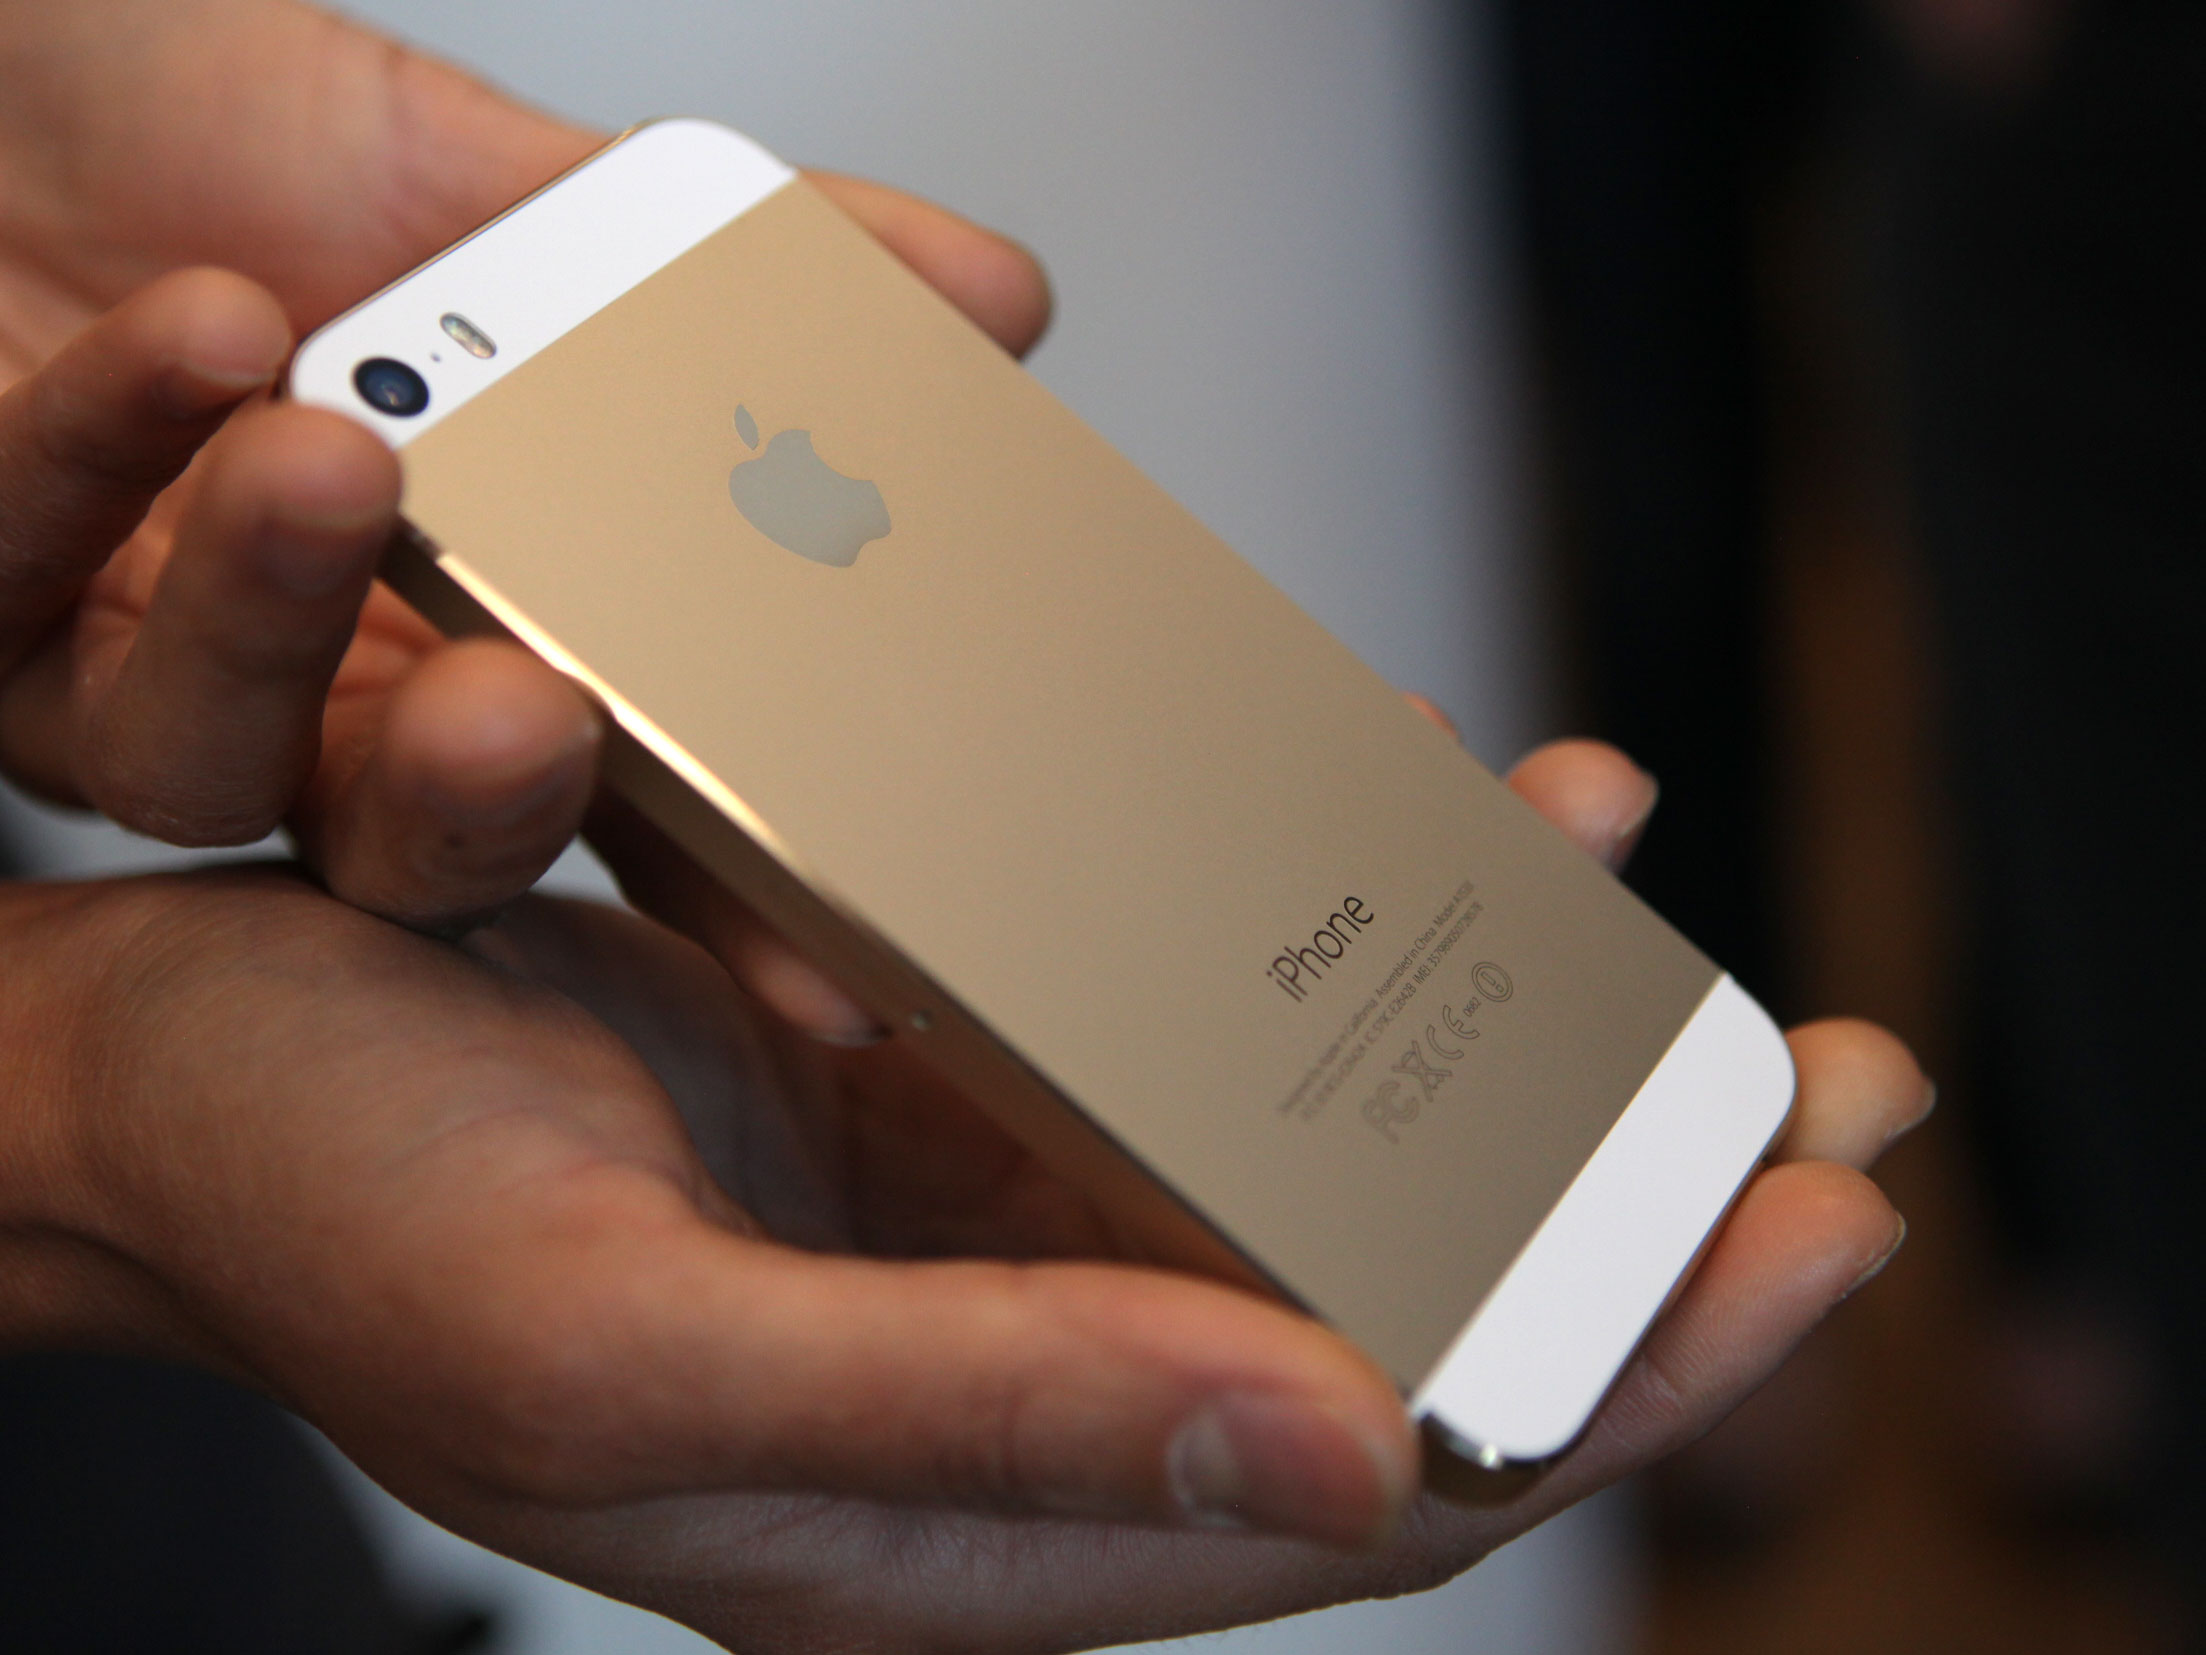 Gold iPhone being shown off at Apple's unveiling in Cupertino, Calif. on Sept. 10.